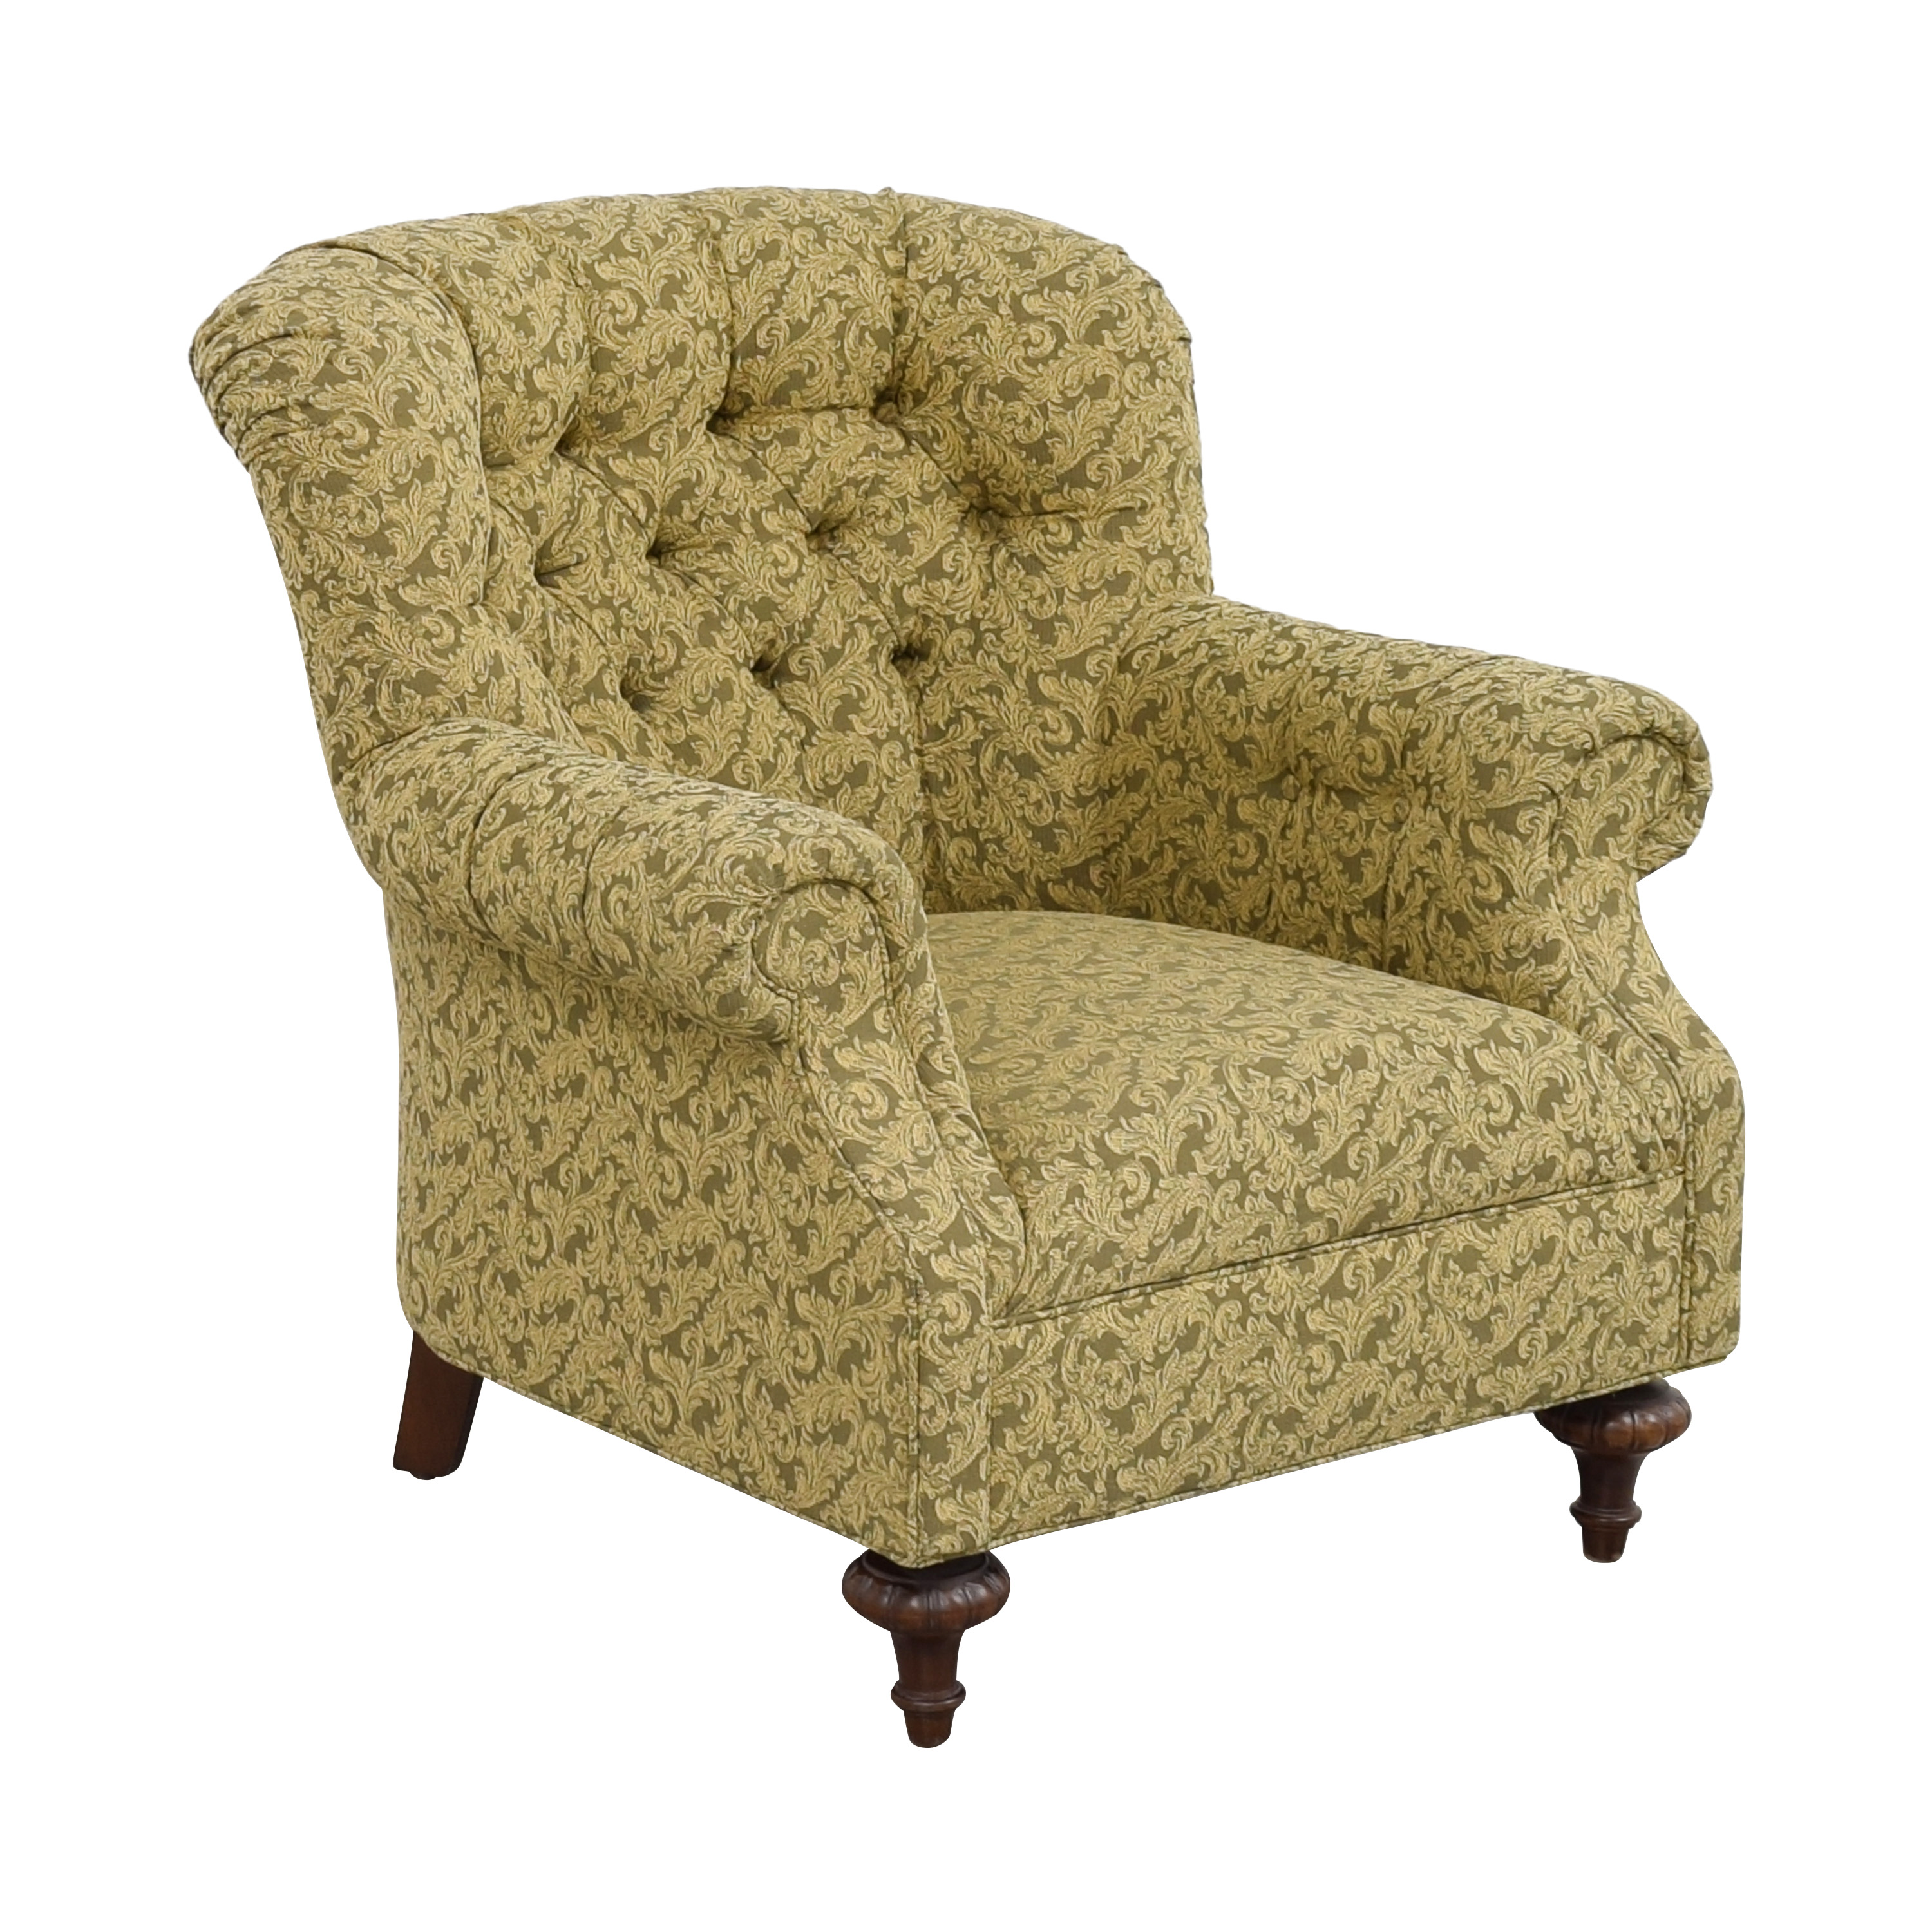 Domain Home Tufted Roll Arm Accent Chair / Chairs